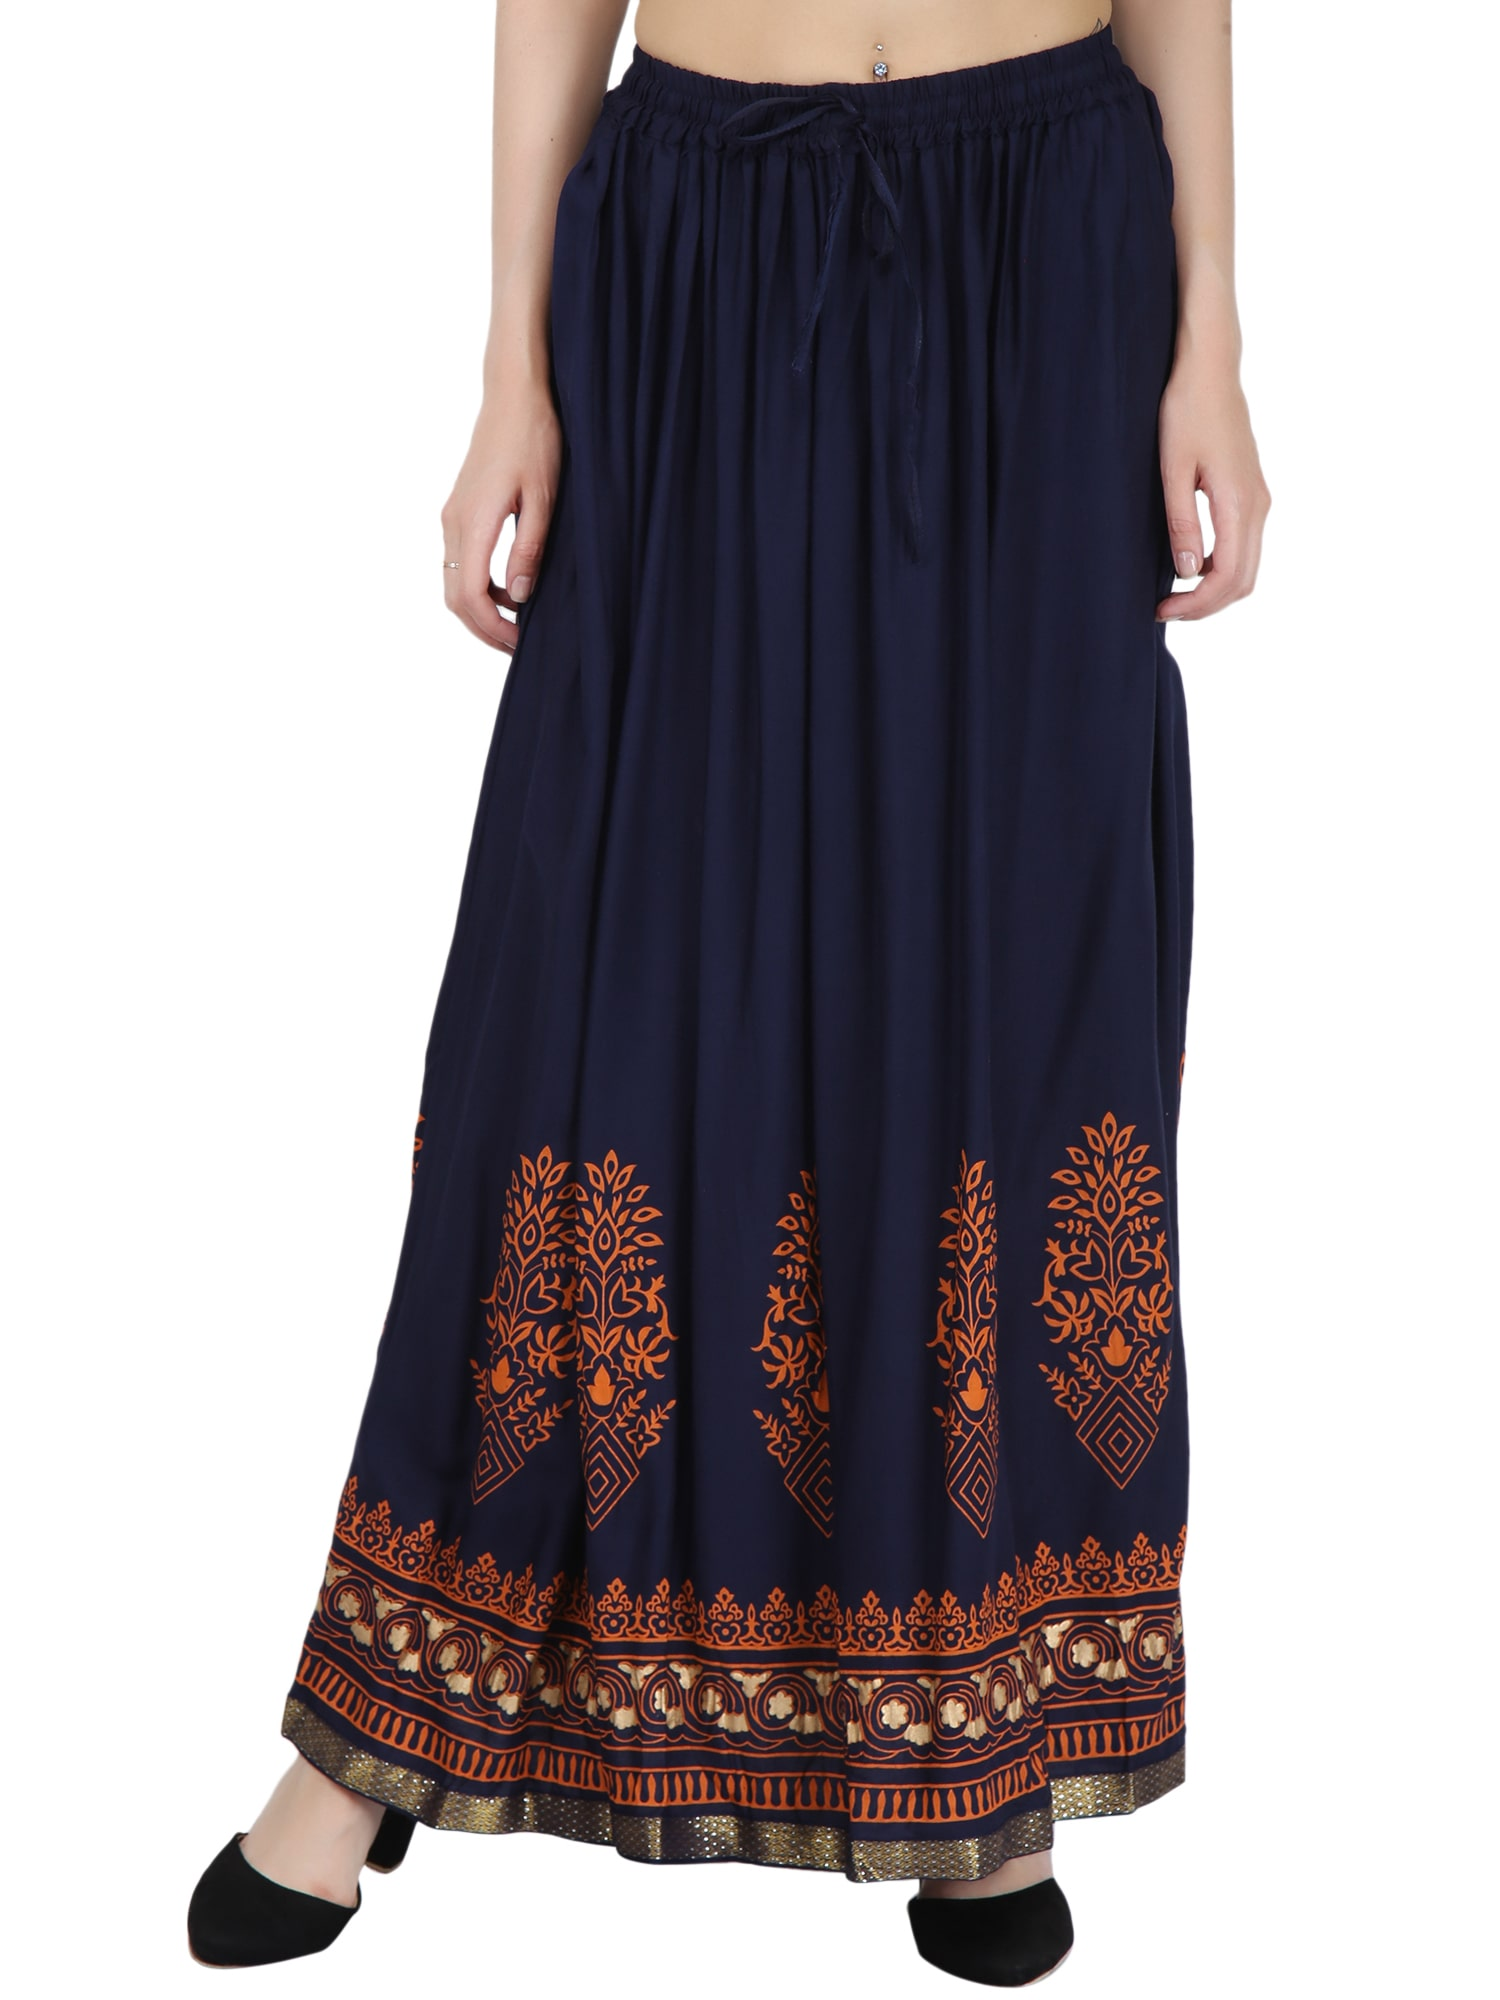 https://assetscdn1.paytm.com/images/catalog/product/A/AP/APPDECOT-PARADIINDI3243488E8F73/0..jpg